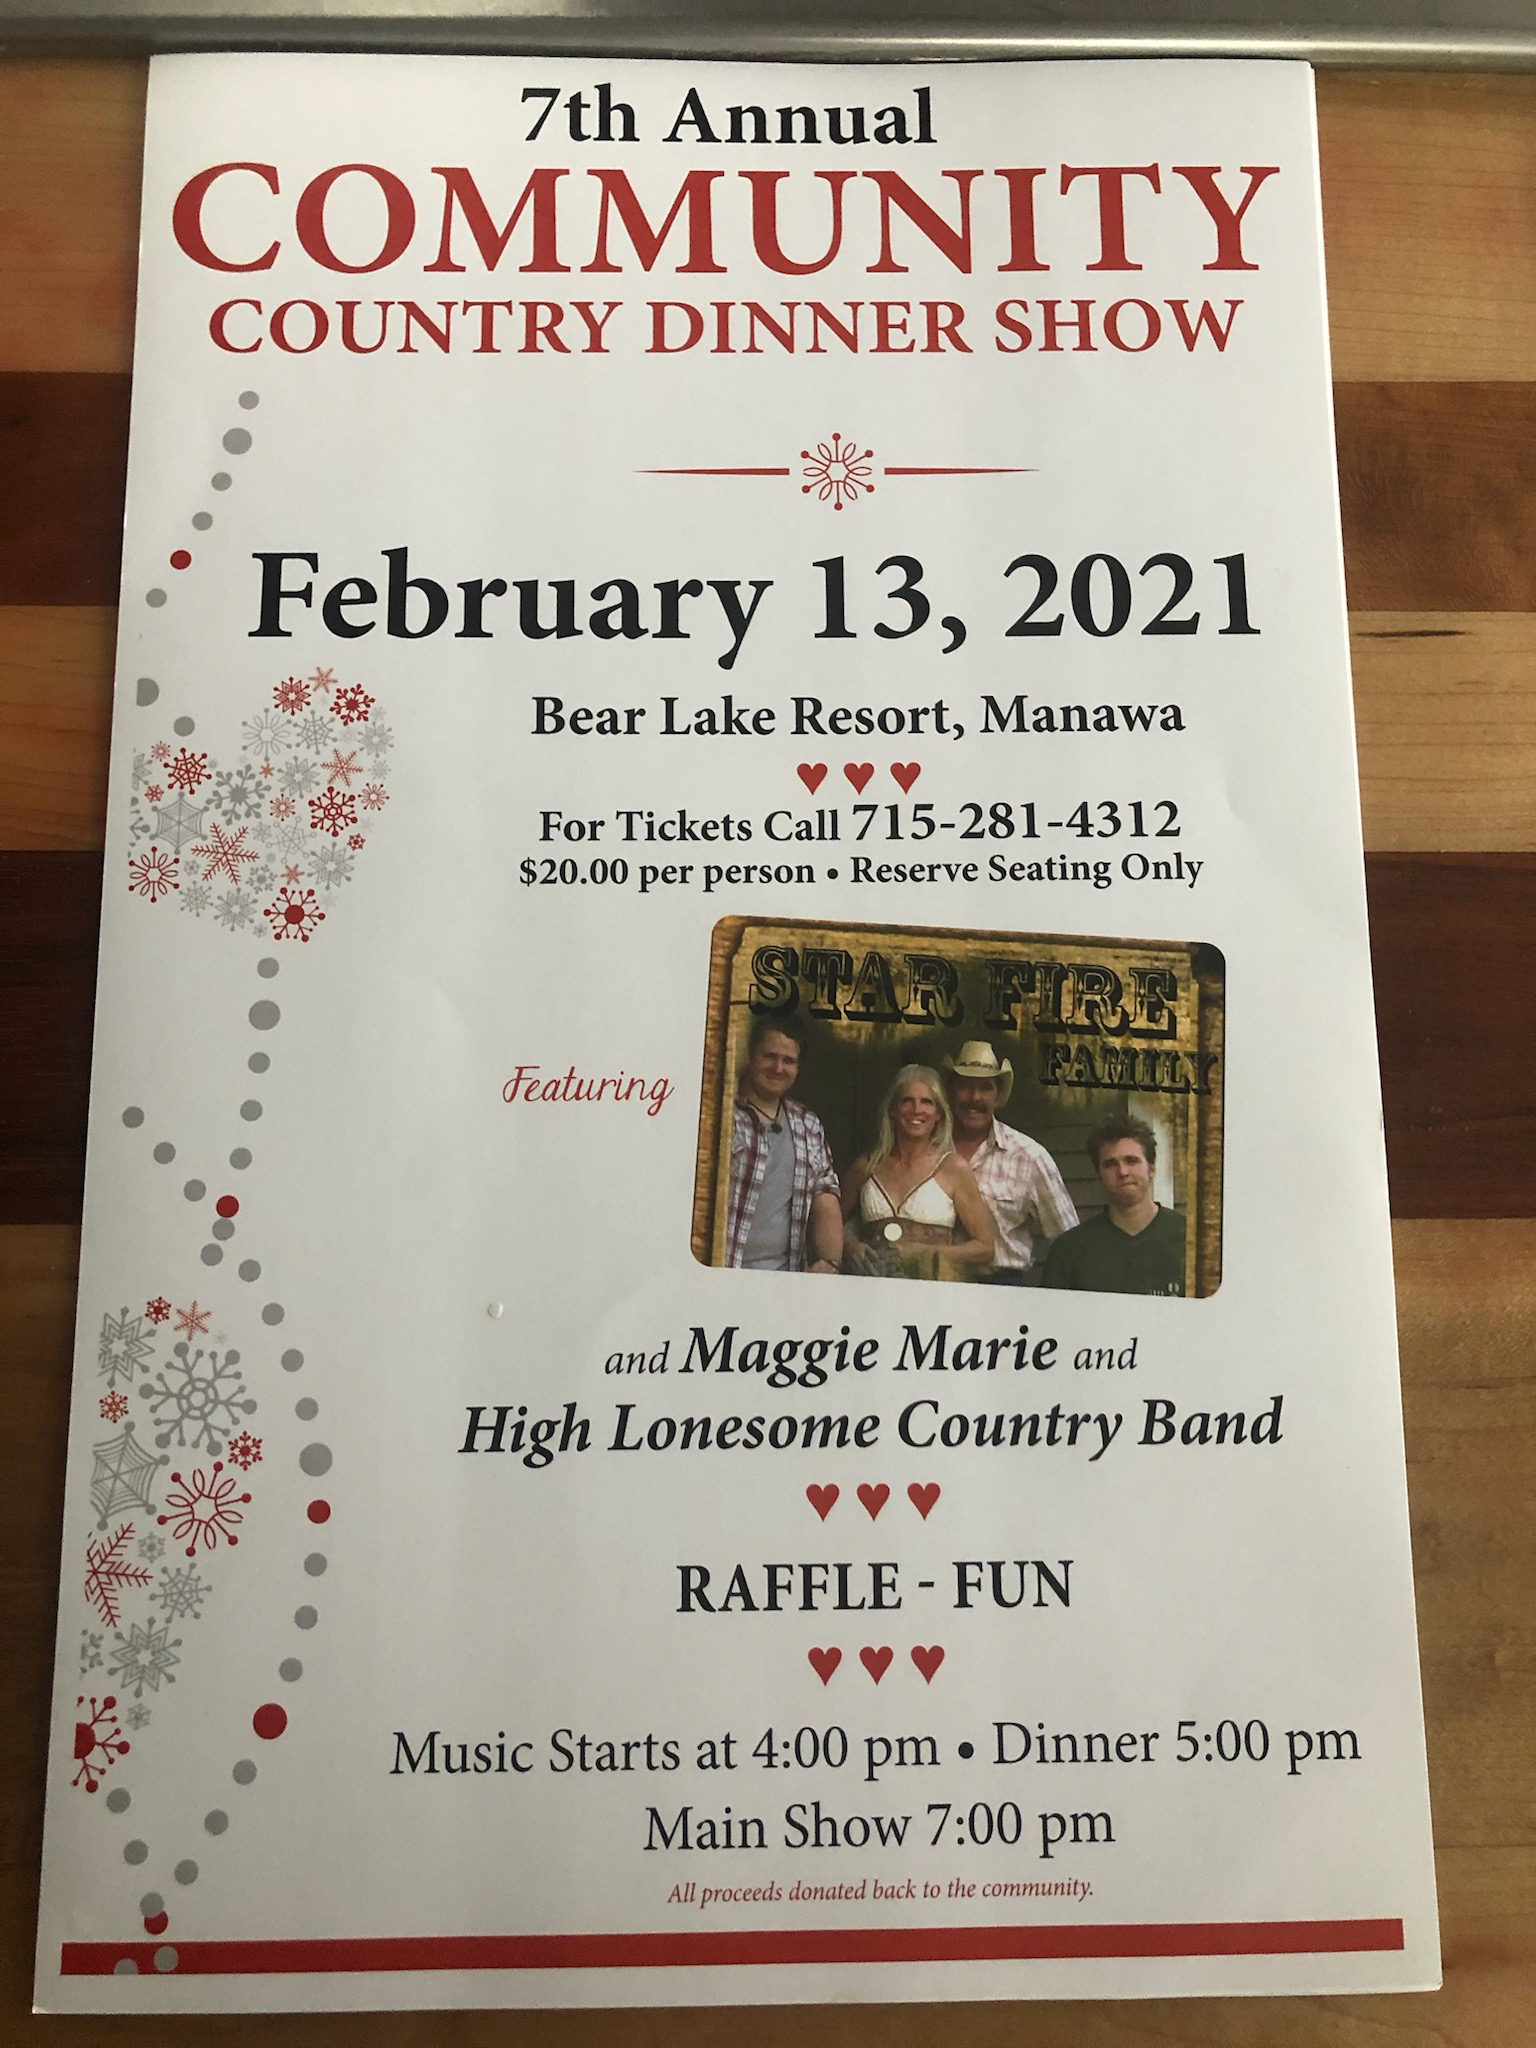 7th Annual Country Dinner Show - February 13th, 2021